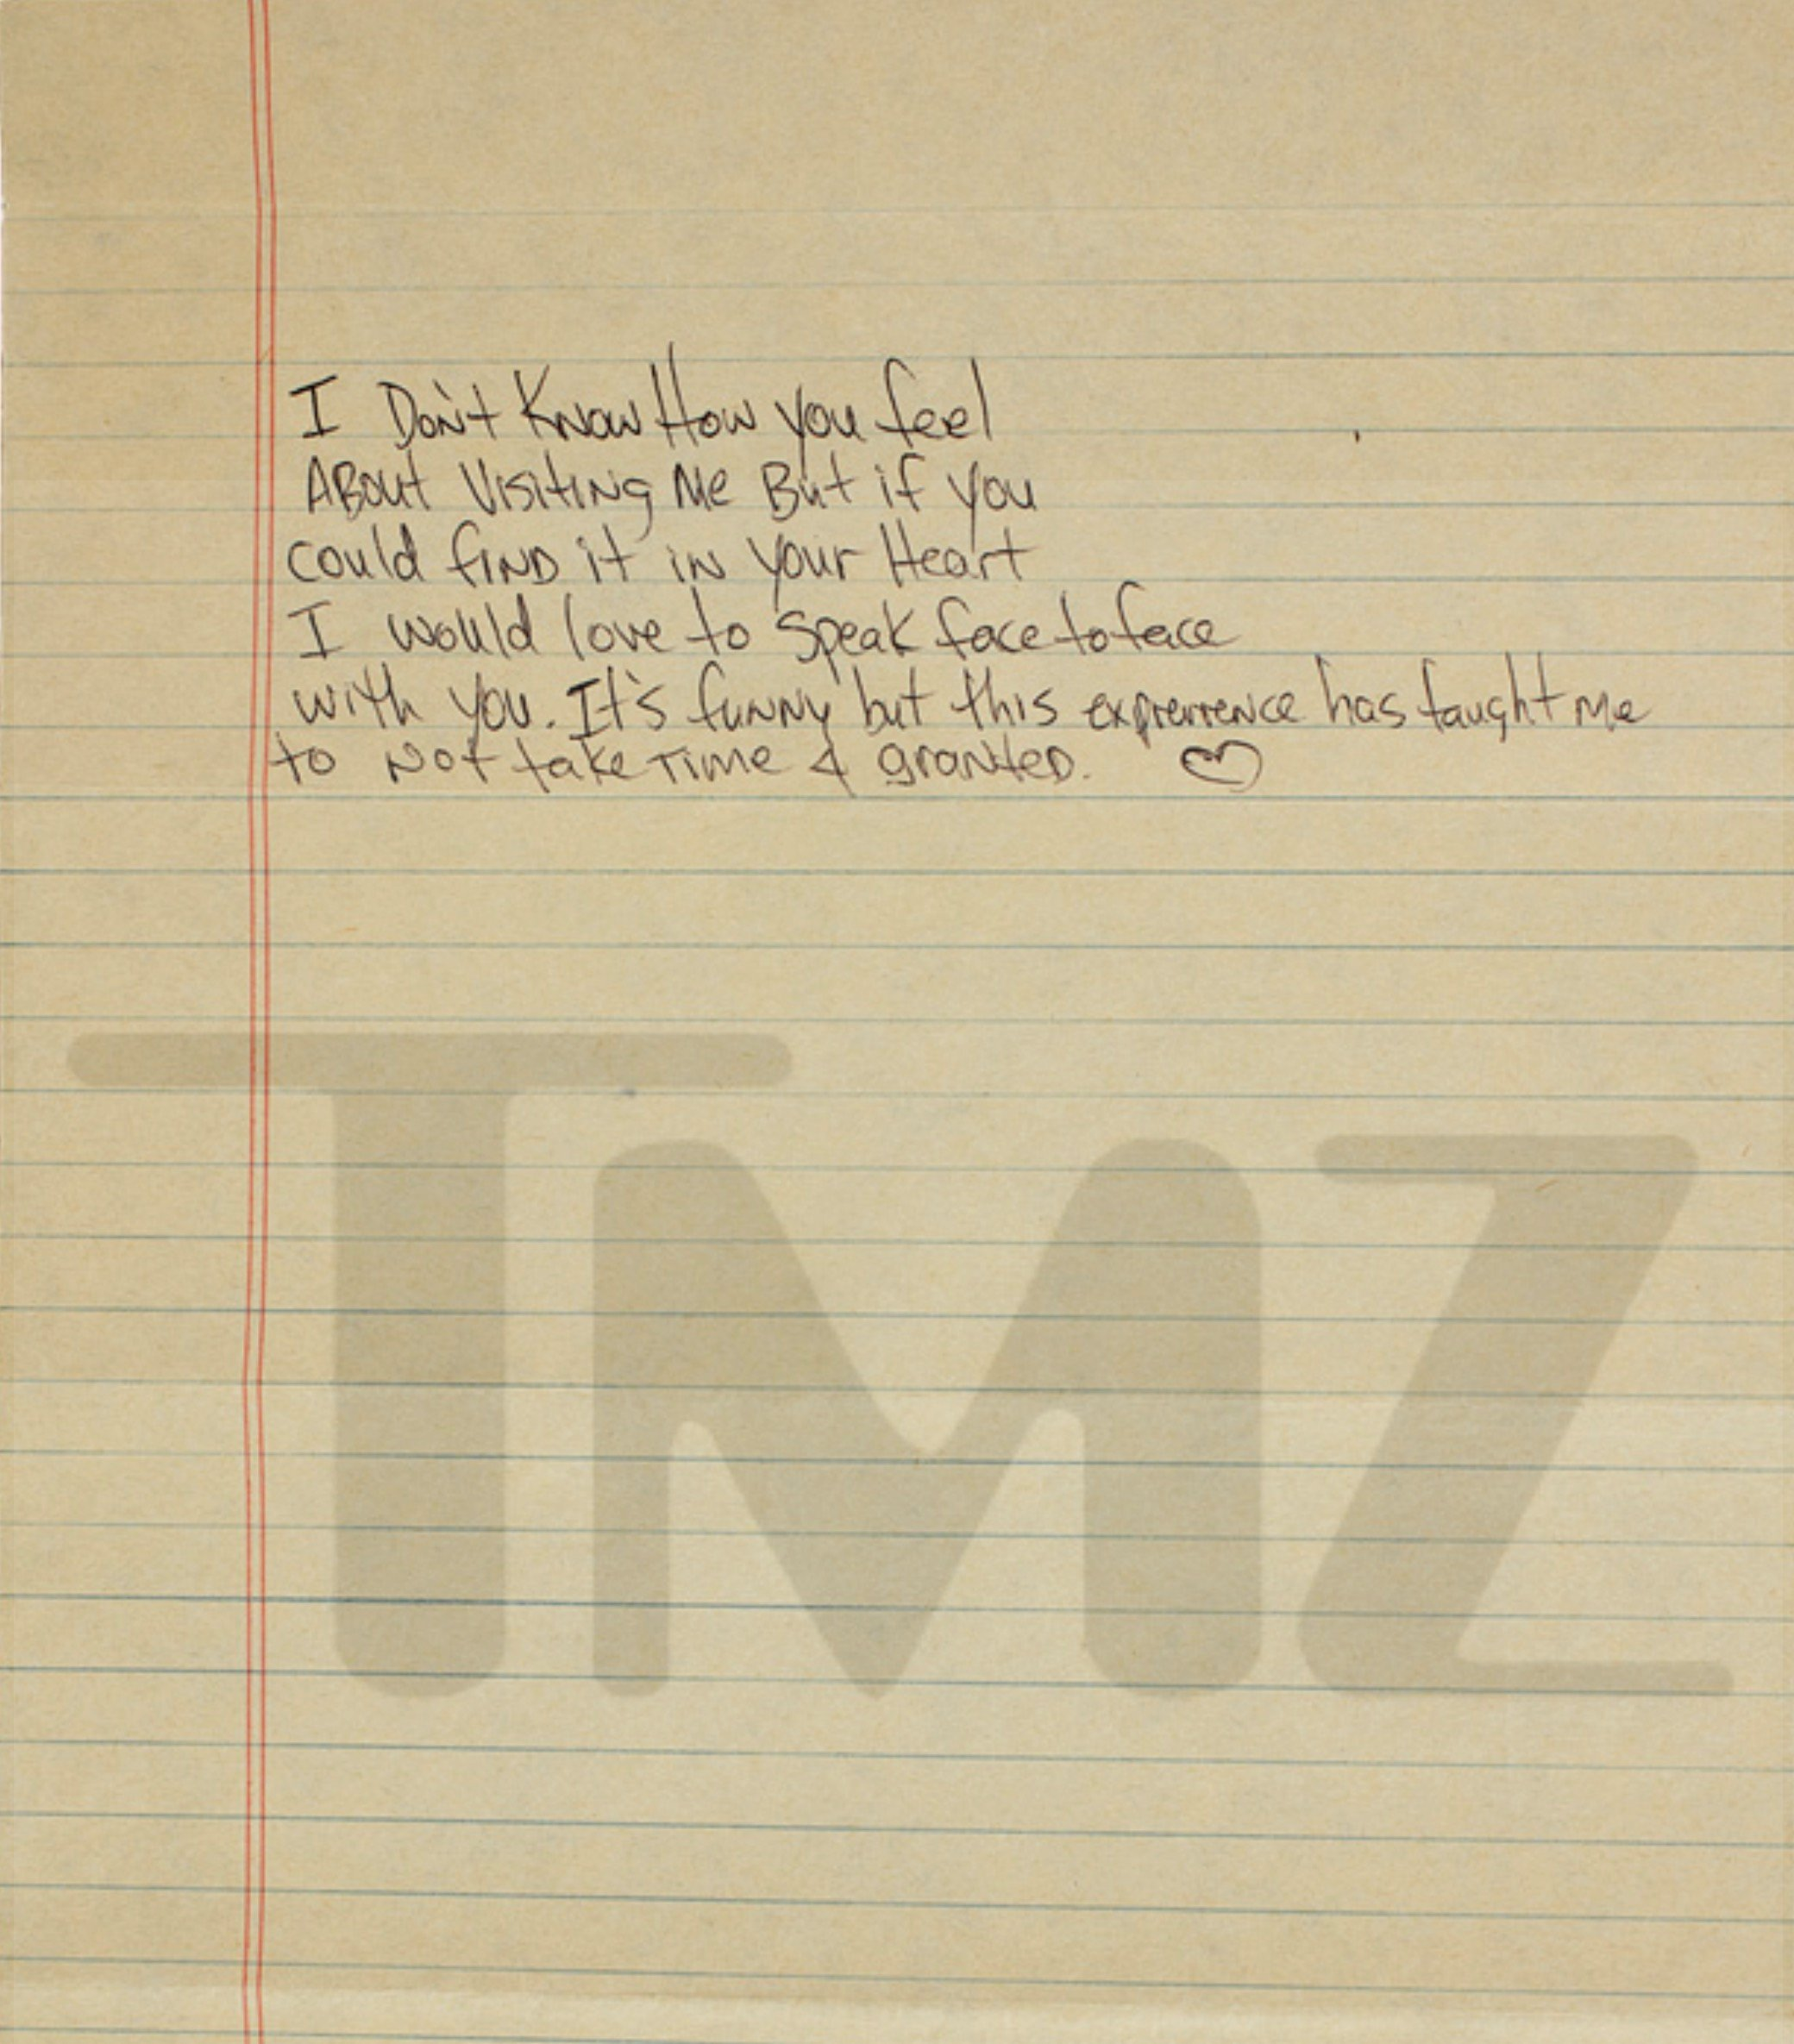 2Pac Played Race Card, Prison Letter Reveals He Dumped Madonna For